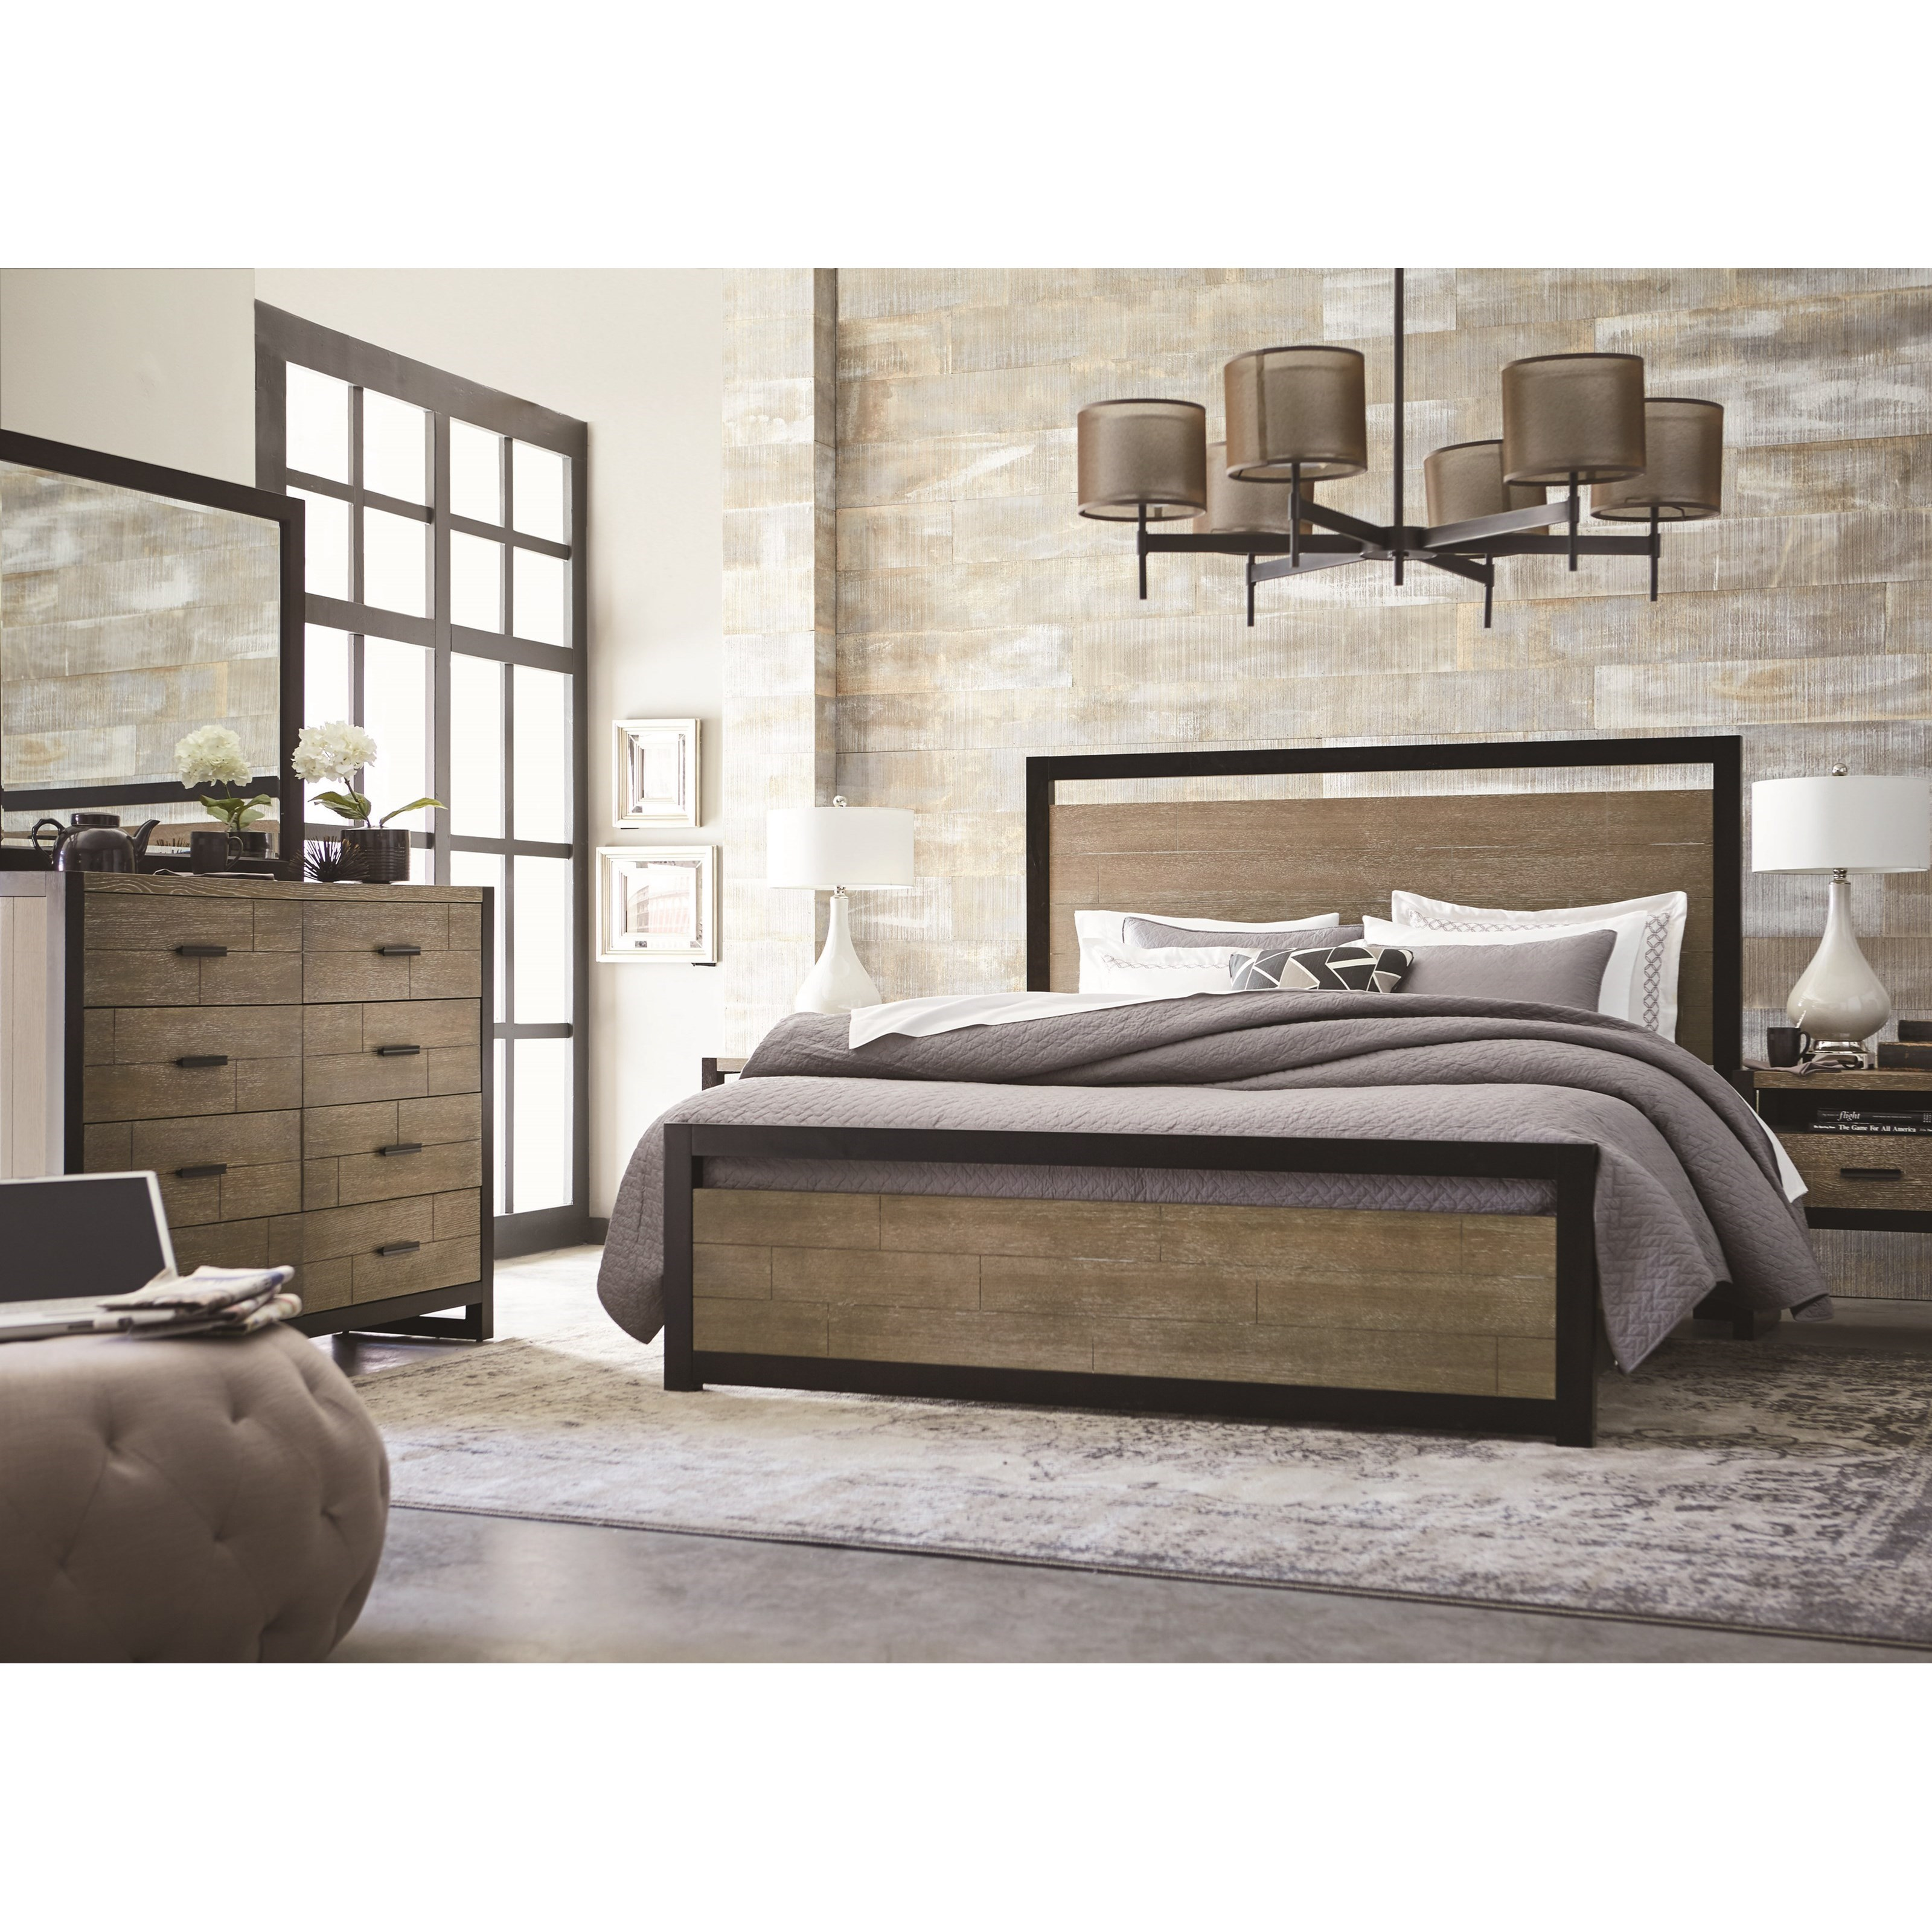 Legacy Classic Helix King Bedroom Group 2 - Item Number: 4660 King Bedroom Group 2